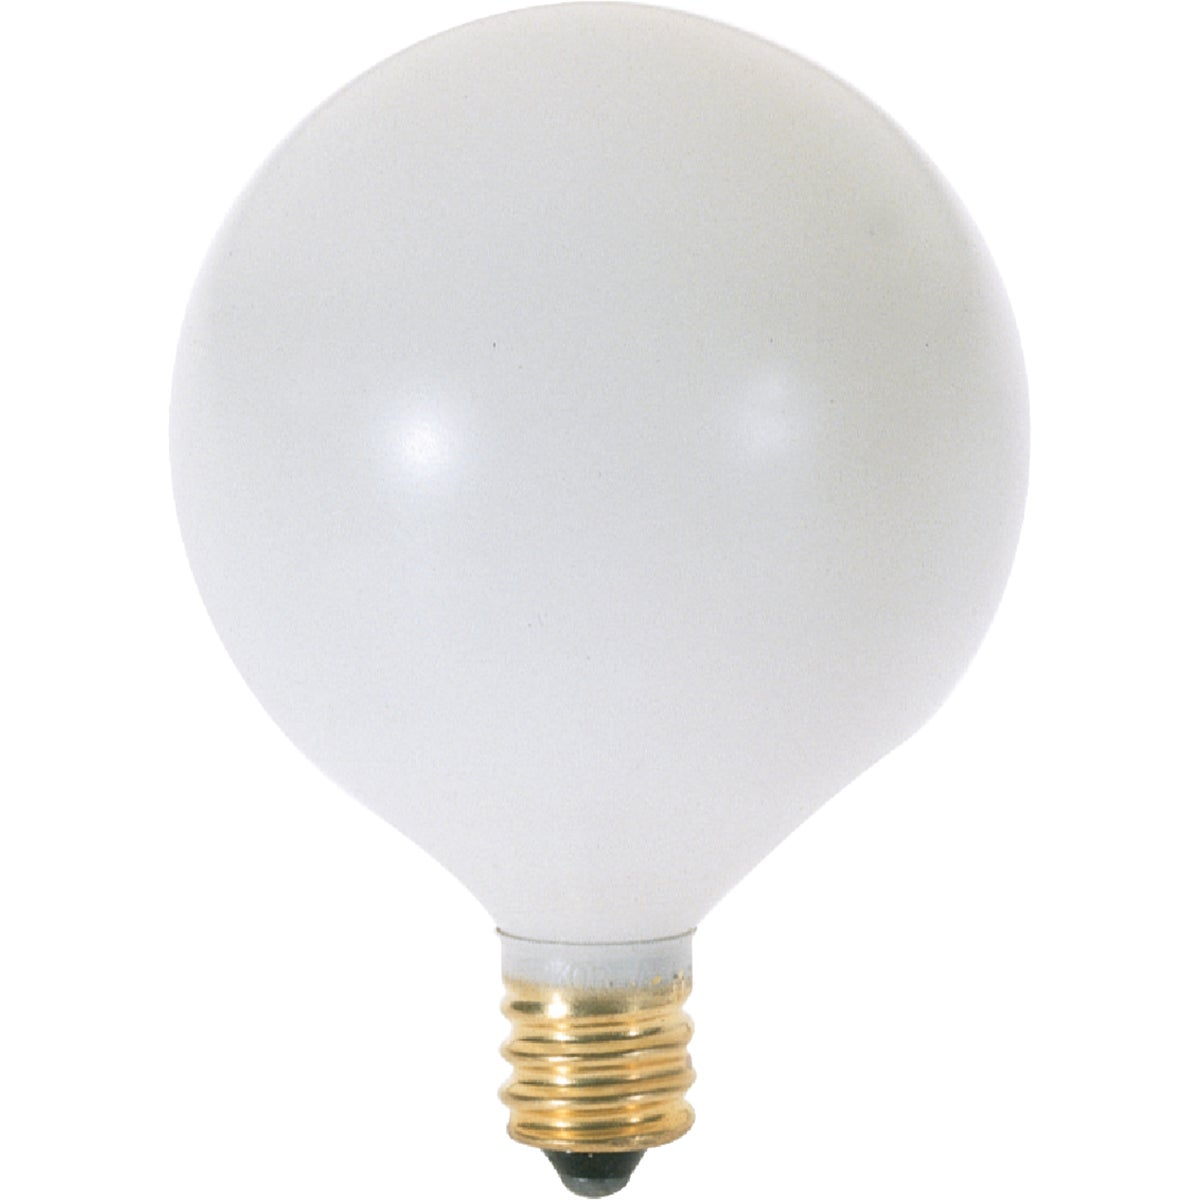 60W WHT 2-1/16GLOBE BULB - 44723 60GC/W by G E Lighting